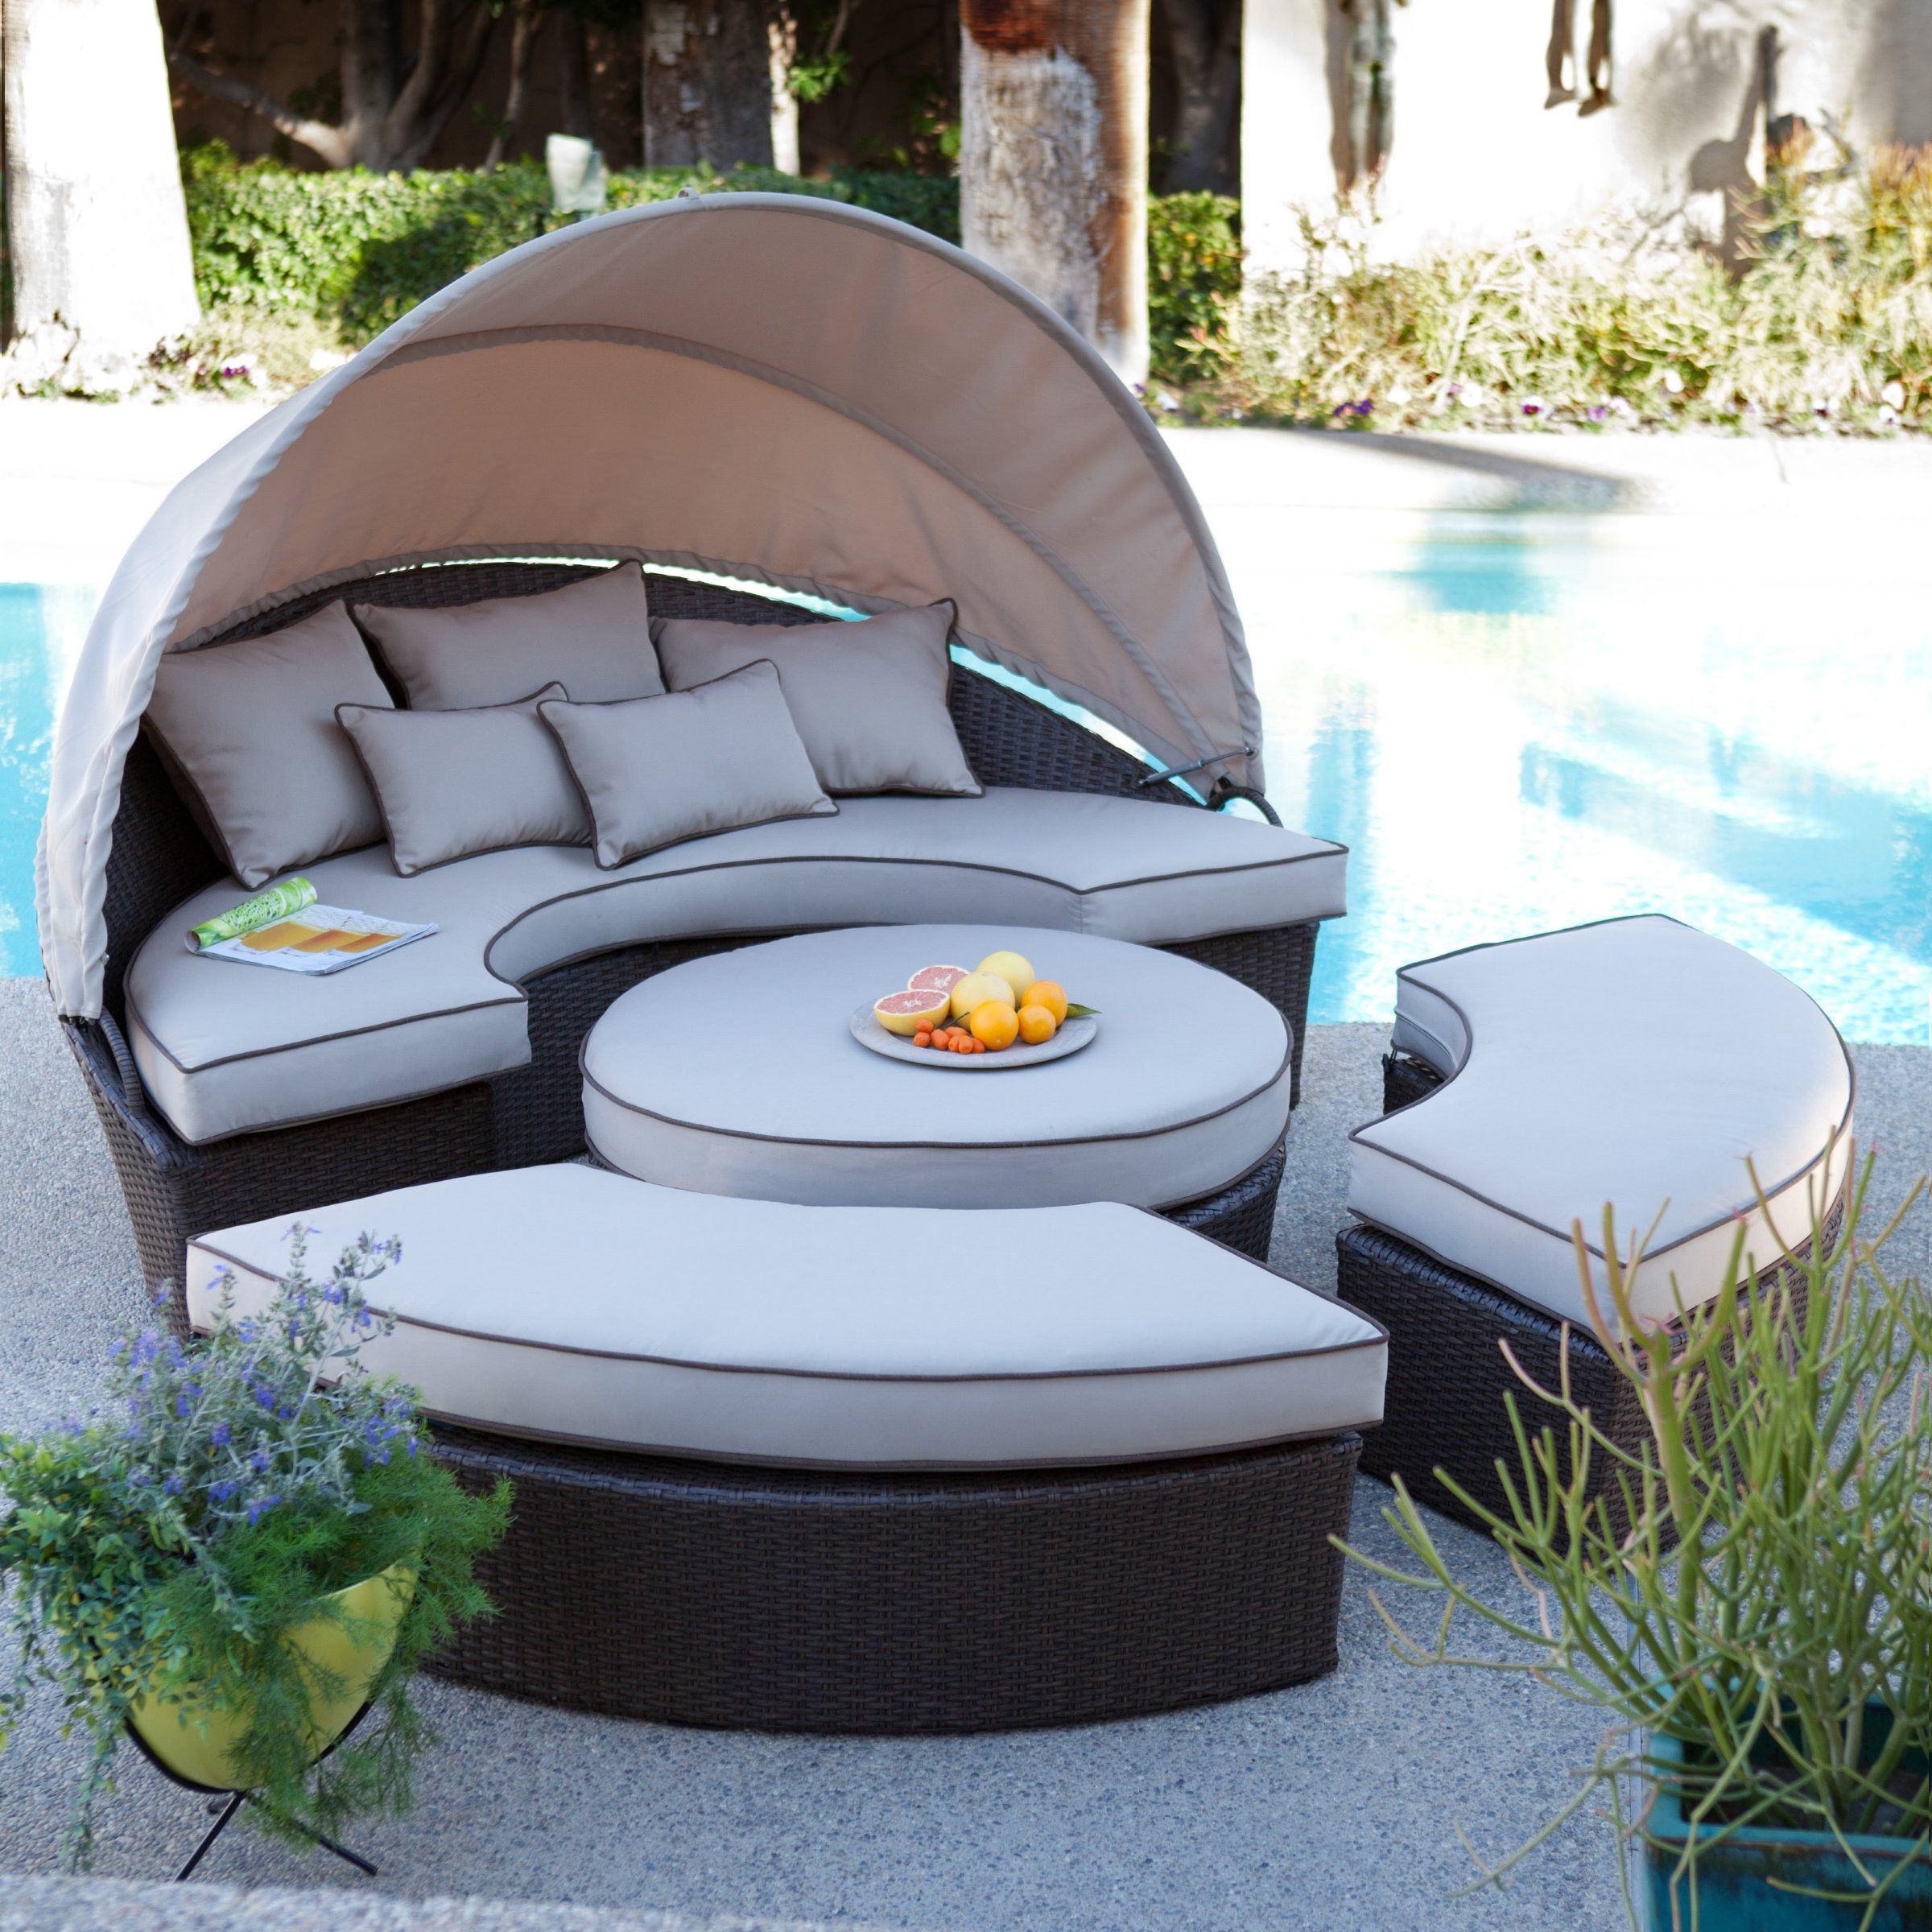 Sunbrella Belham Living Rendezvous All-Weather Wicker Sectional Daybed - Outdoor Chaise Lounges at Hayneedle